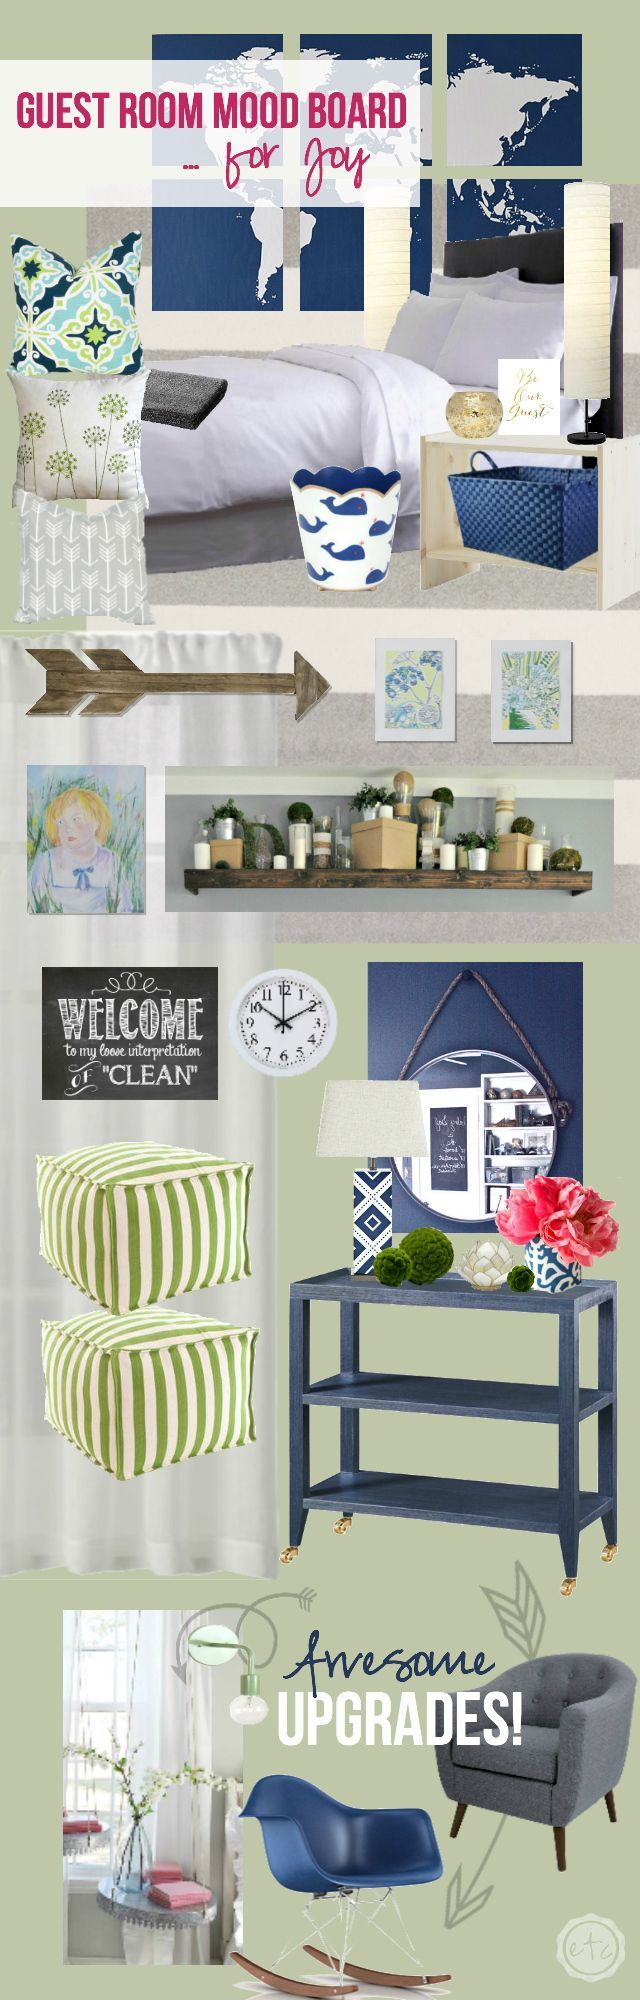 Guest Room Mood Board... for Joy! - Happily Ever After, Etc.